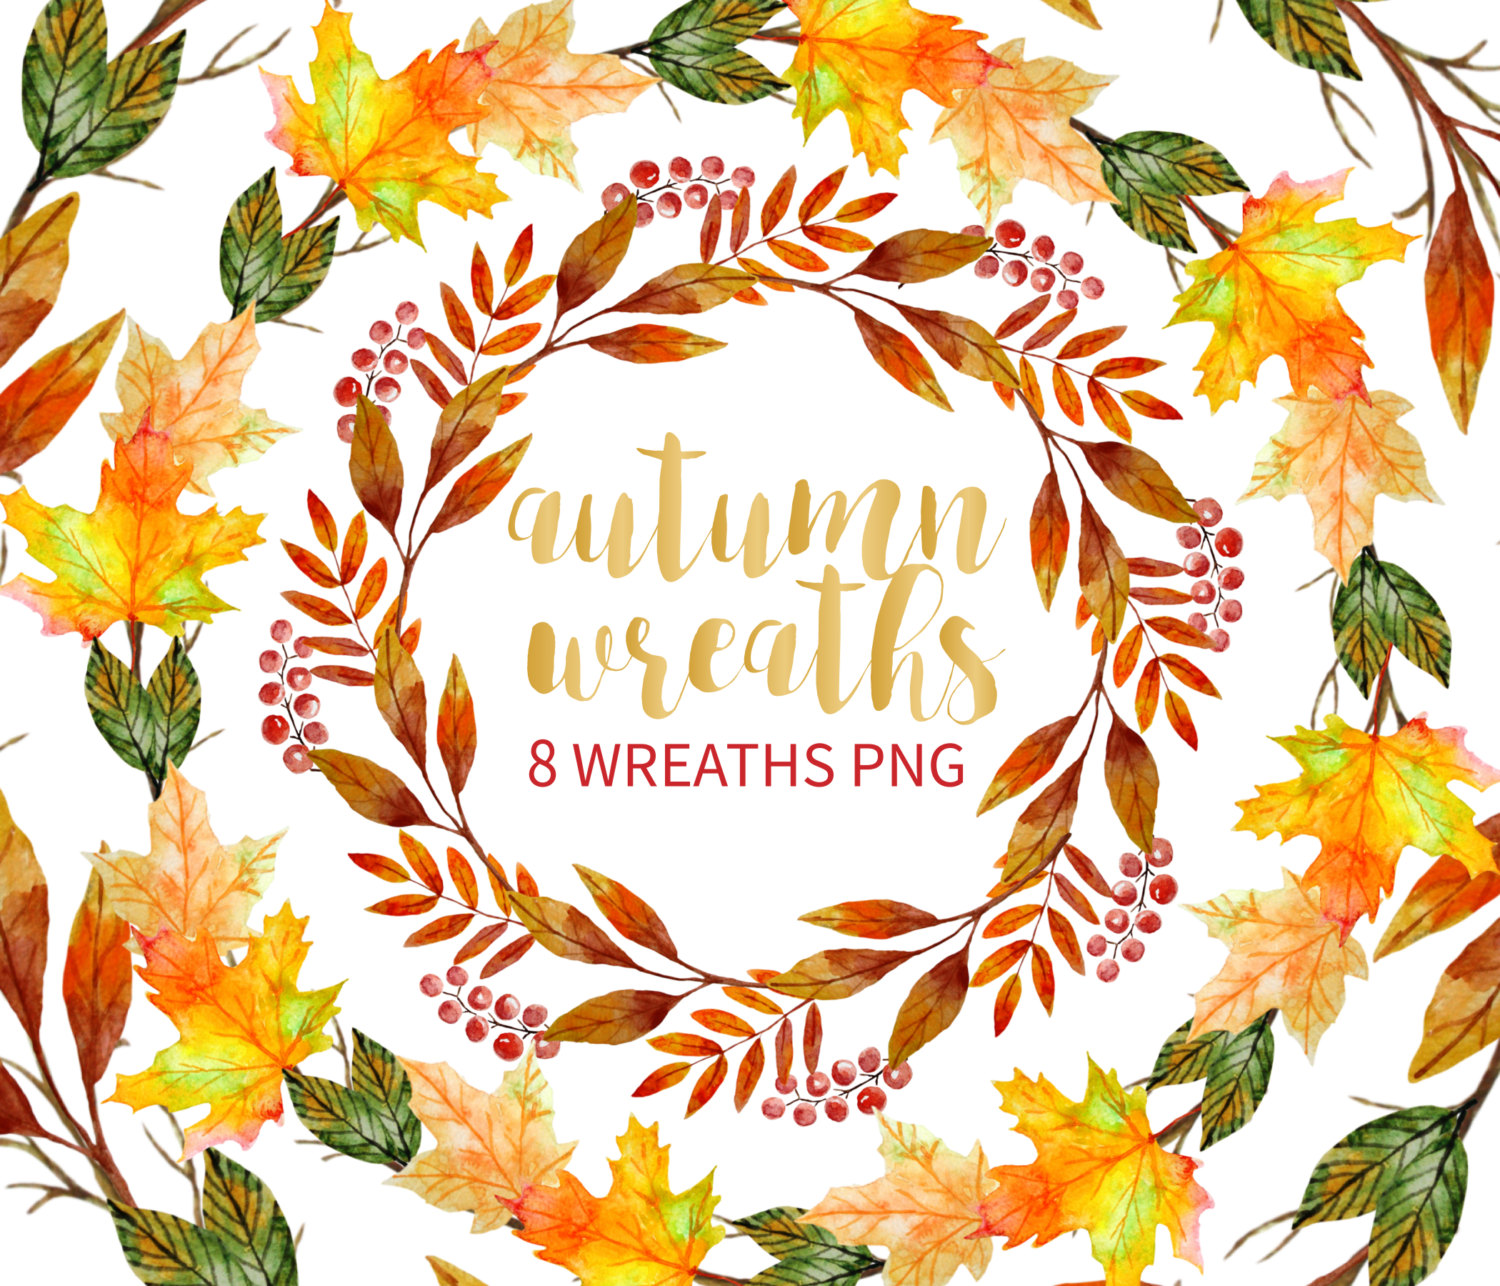 Wreath clipart thanksgiving Watercolor Autumn This digital Drawn